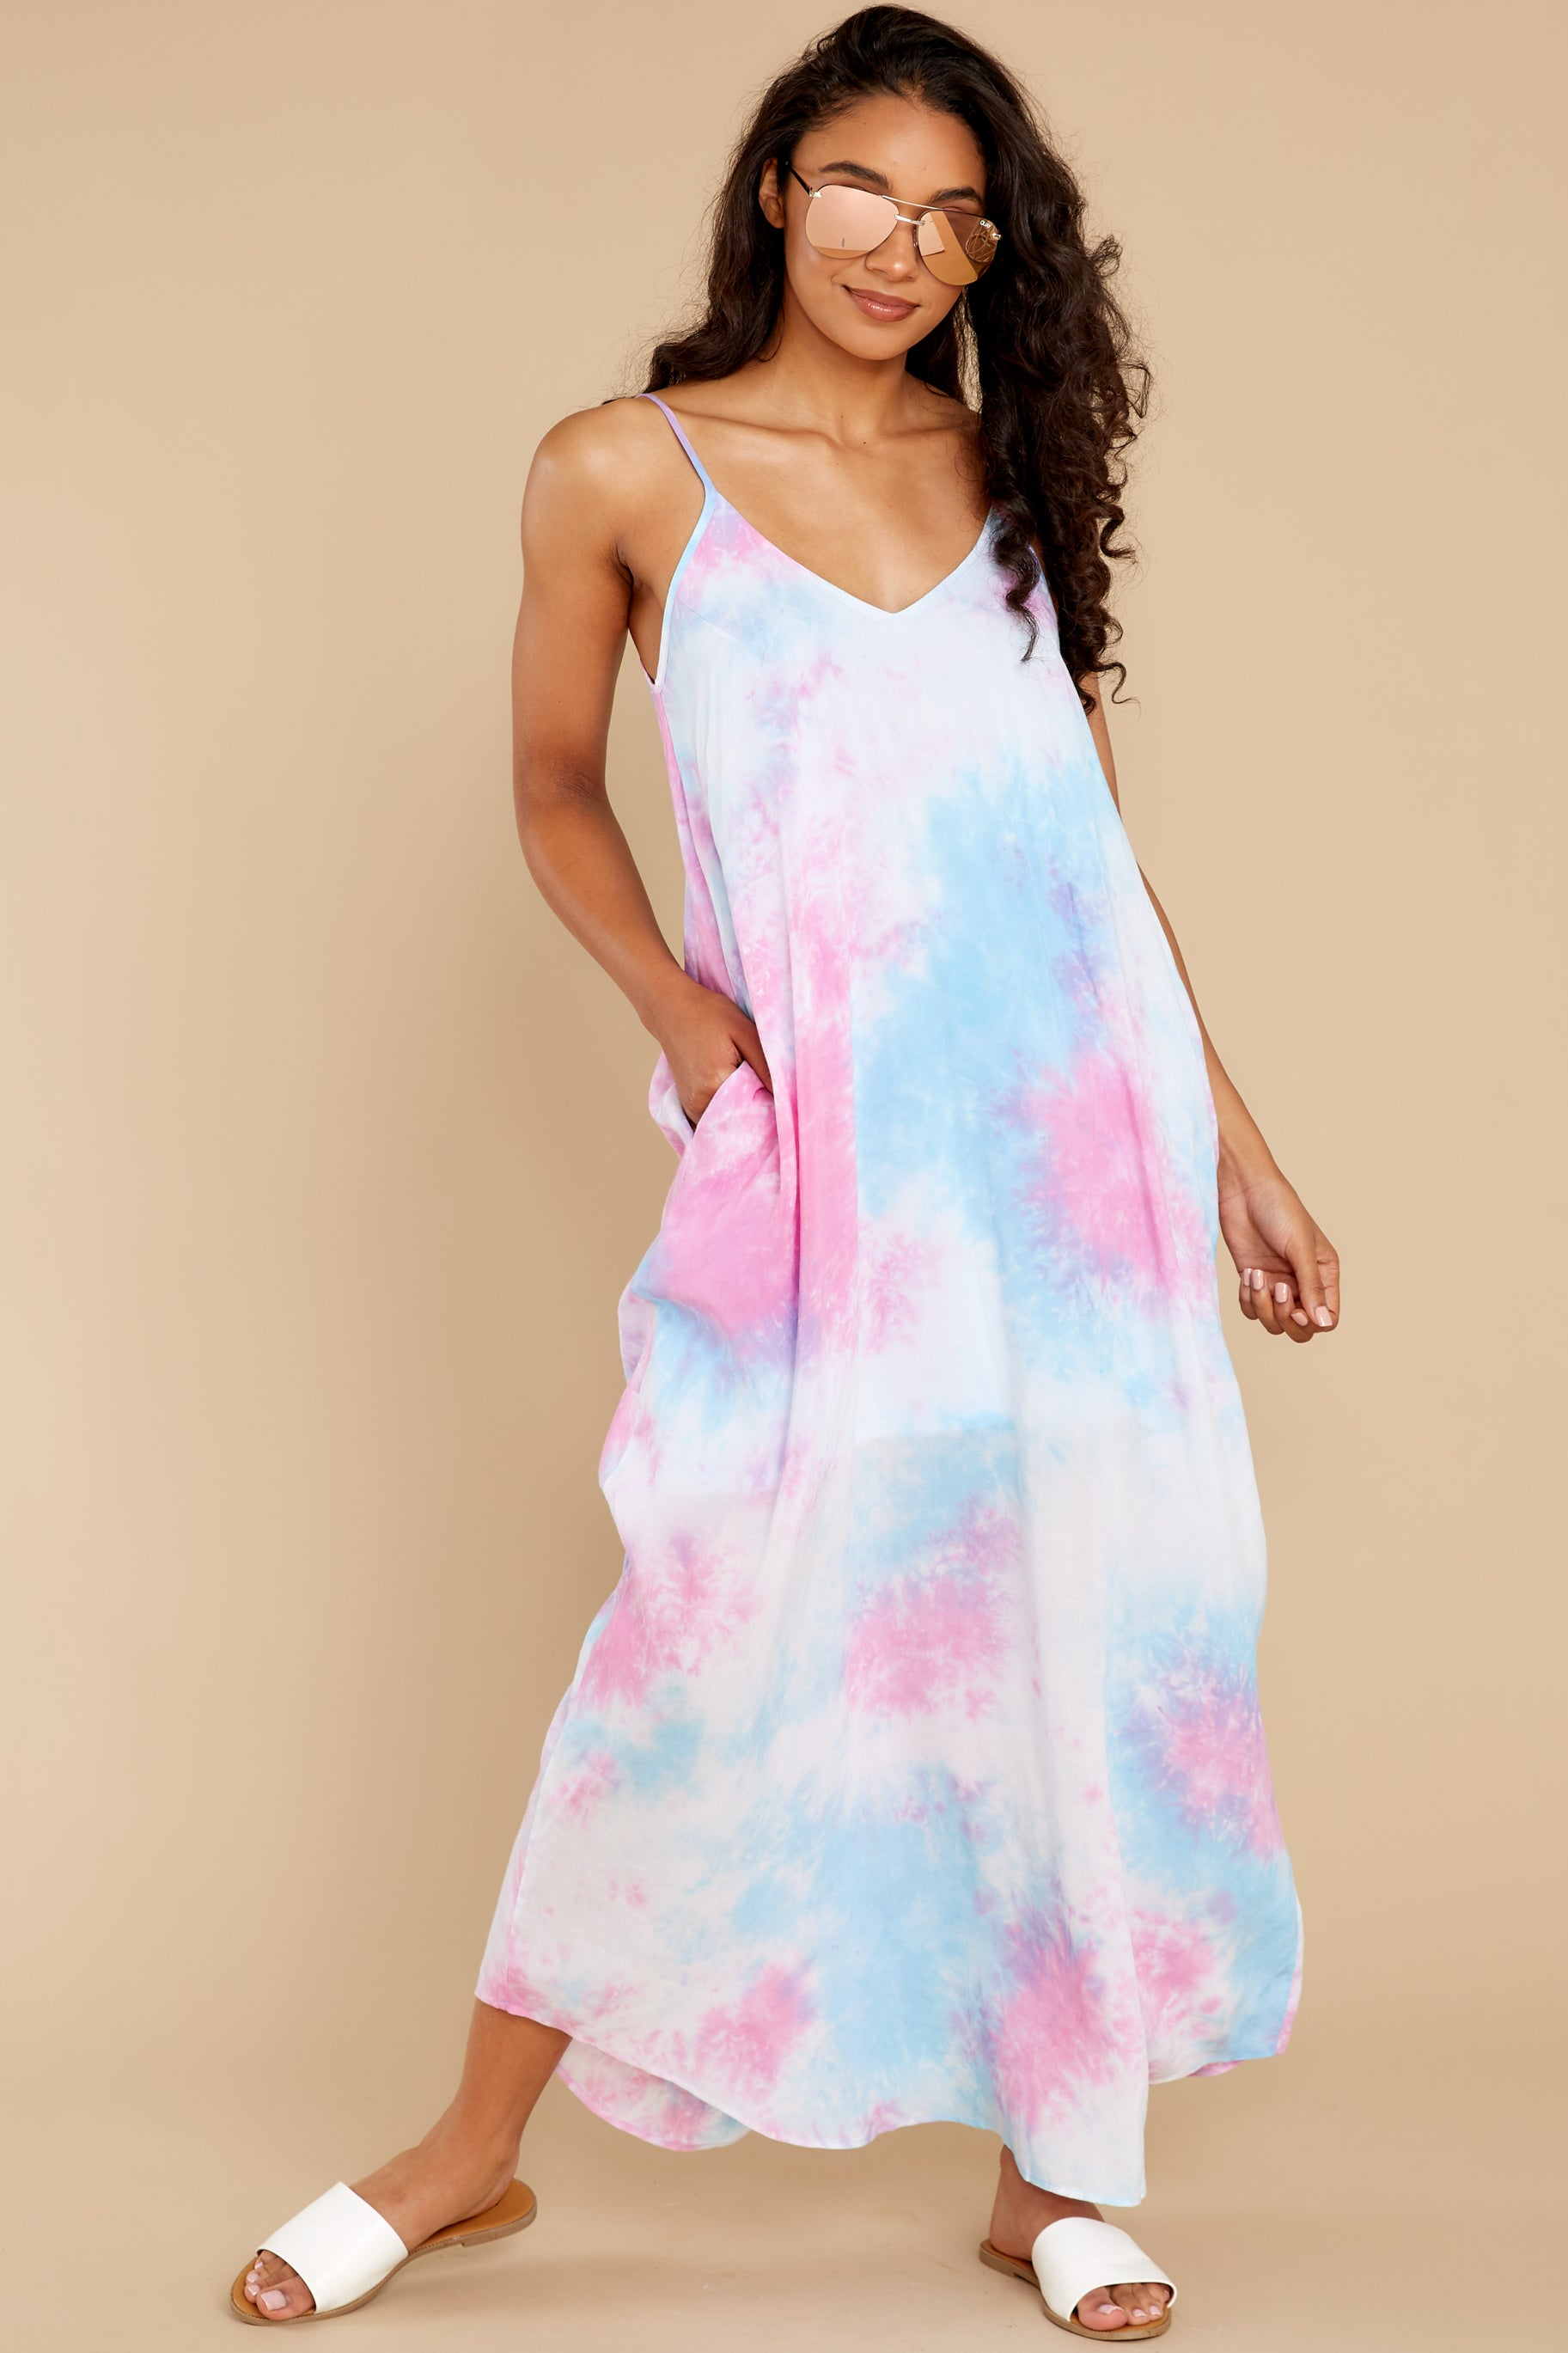 2 Part Of Your Charm Pink Multi Tie Dye Maxi Dress at reddress.com